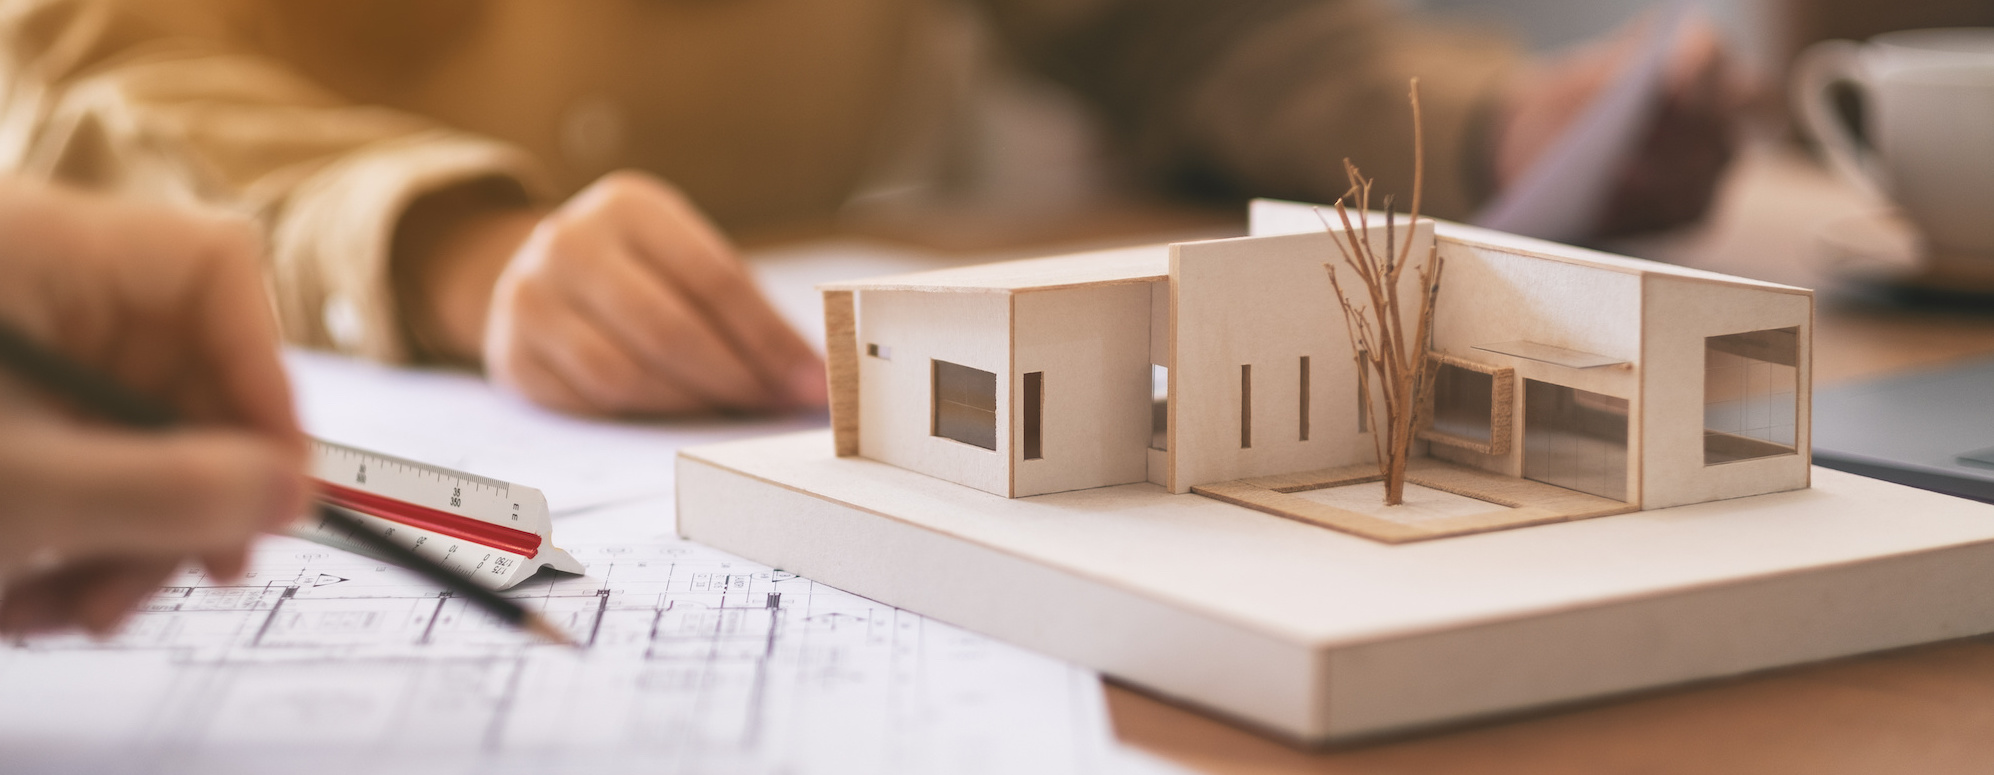 Architect House Designers with experience specialism of Accessible design AccessiblePRS.jpeg